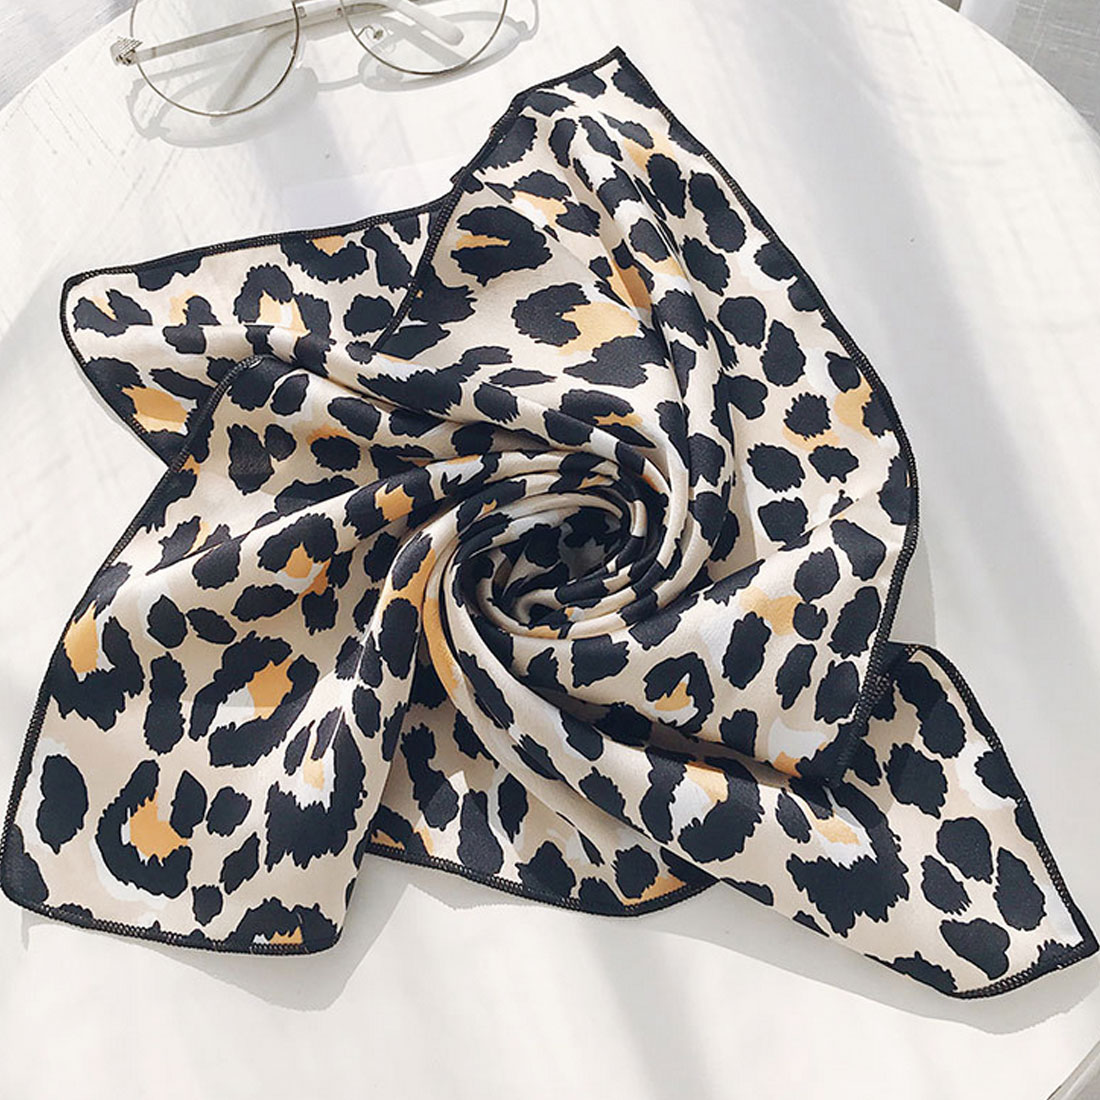 Women Elegant Silk Feeling Square Scarf Hair Tie Band Spring Summer Fashion Vintage Cute Floral Dot Head Neck Neckerchief New in Women 39 s Scarves from Apparel Accessories